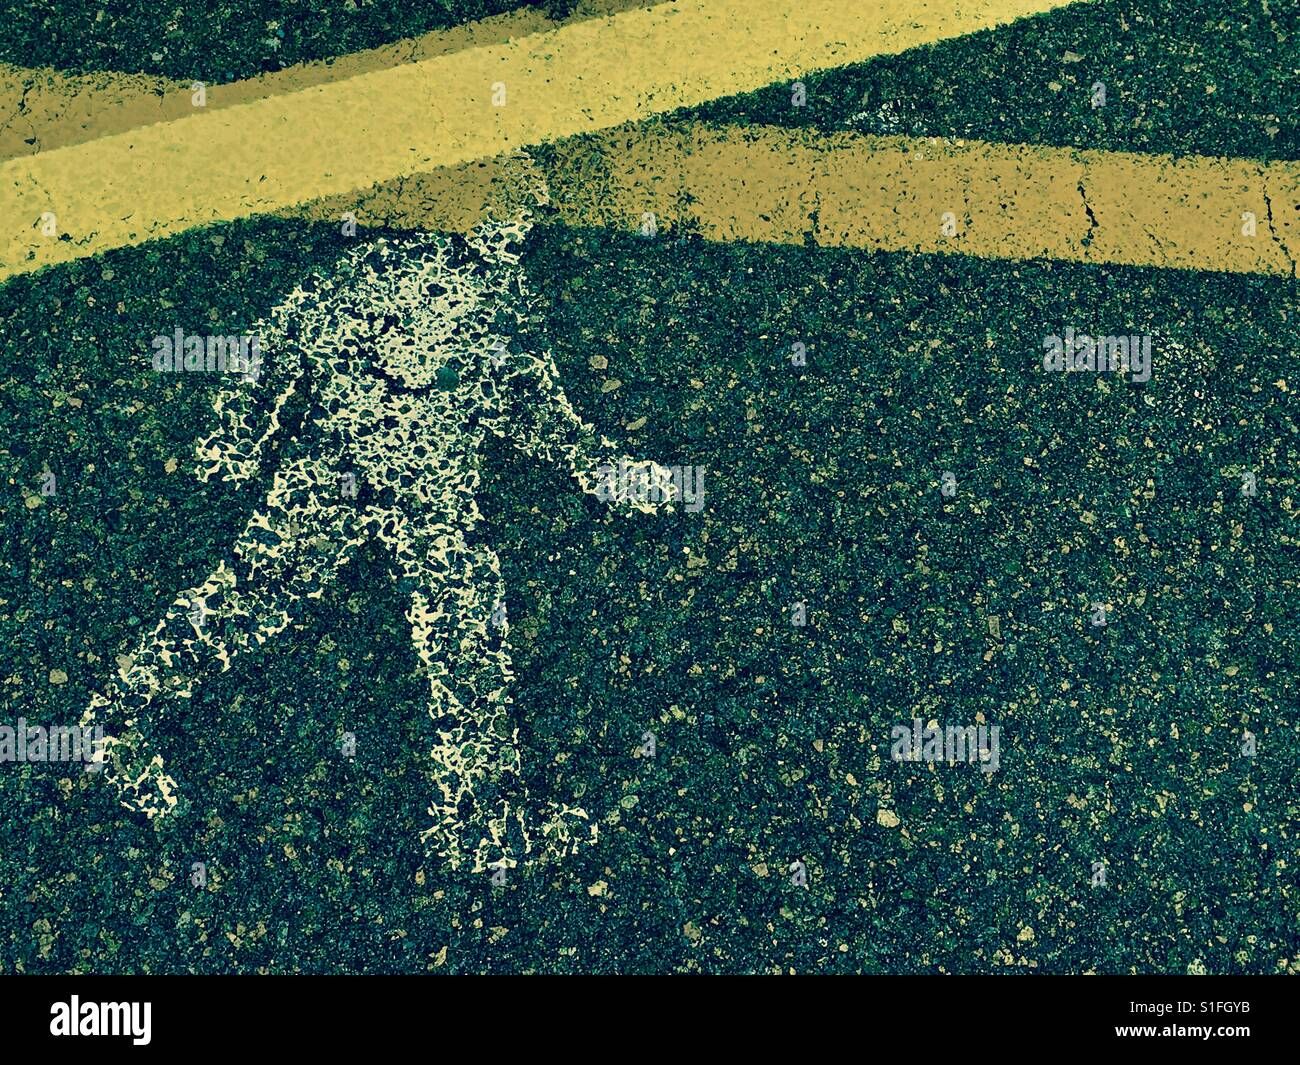 Symbol of a determined man or pedestrian walking - Stock Image